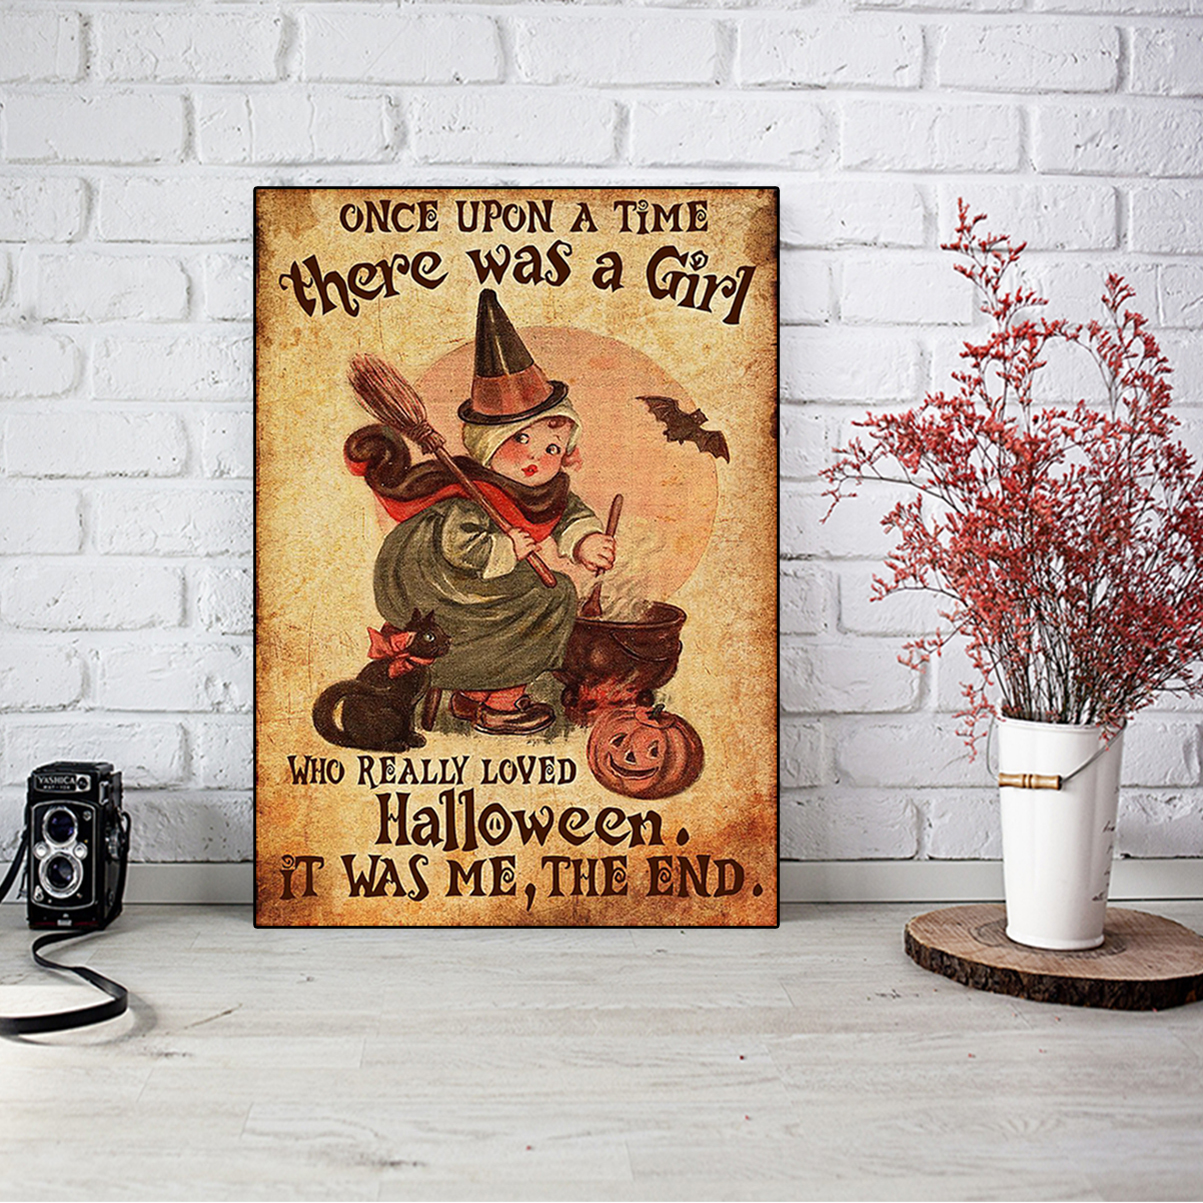 There was a girl who really loved halloween poster A1